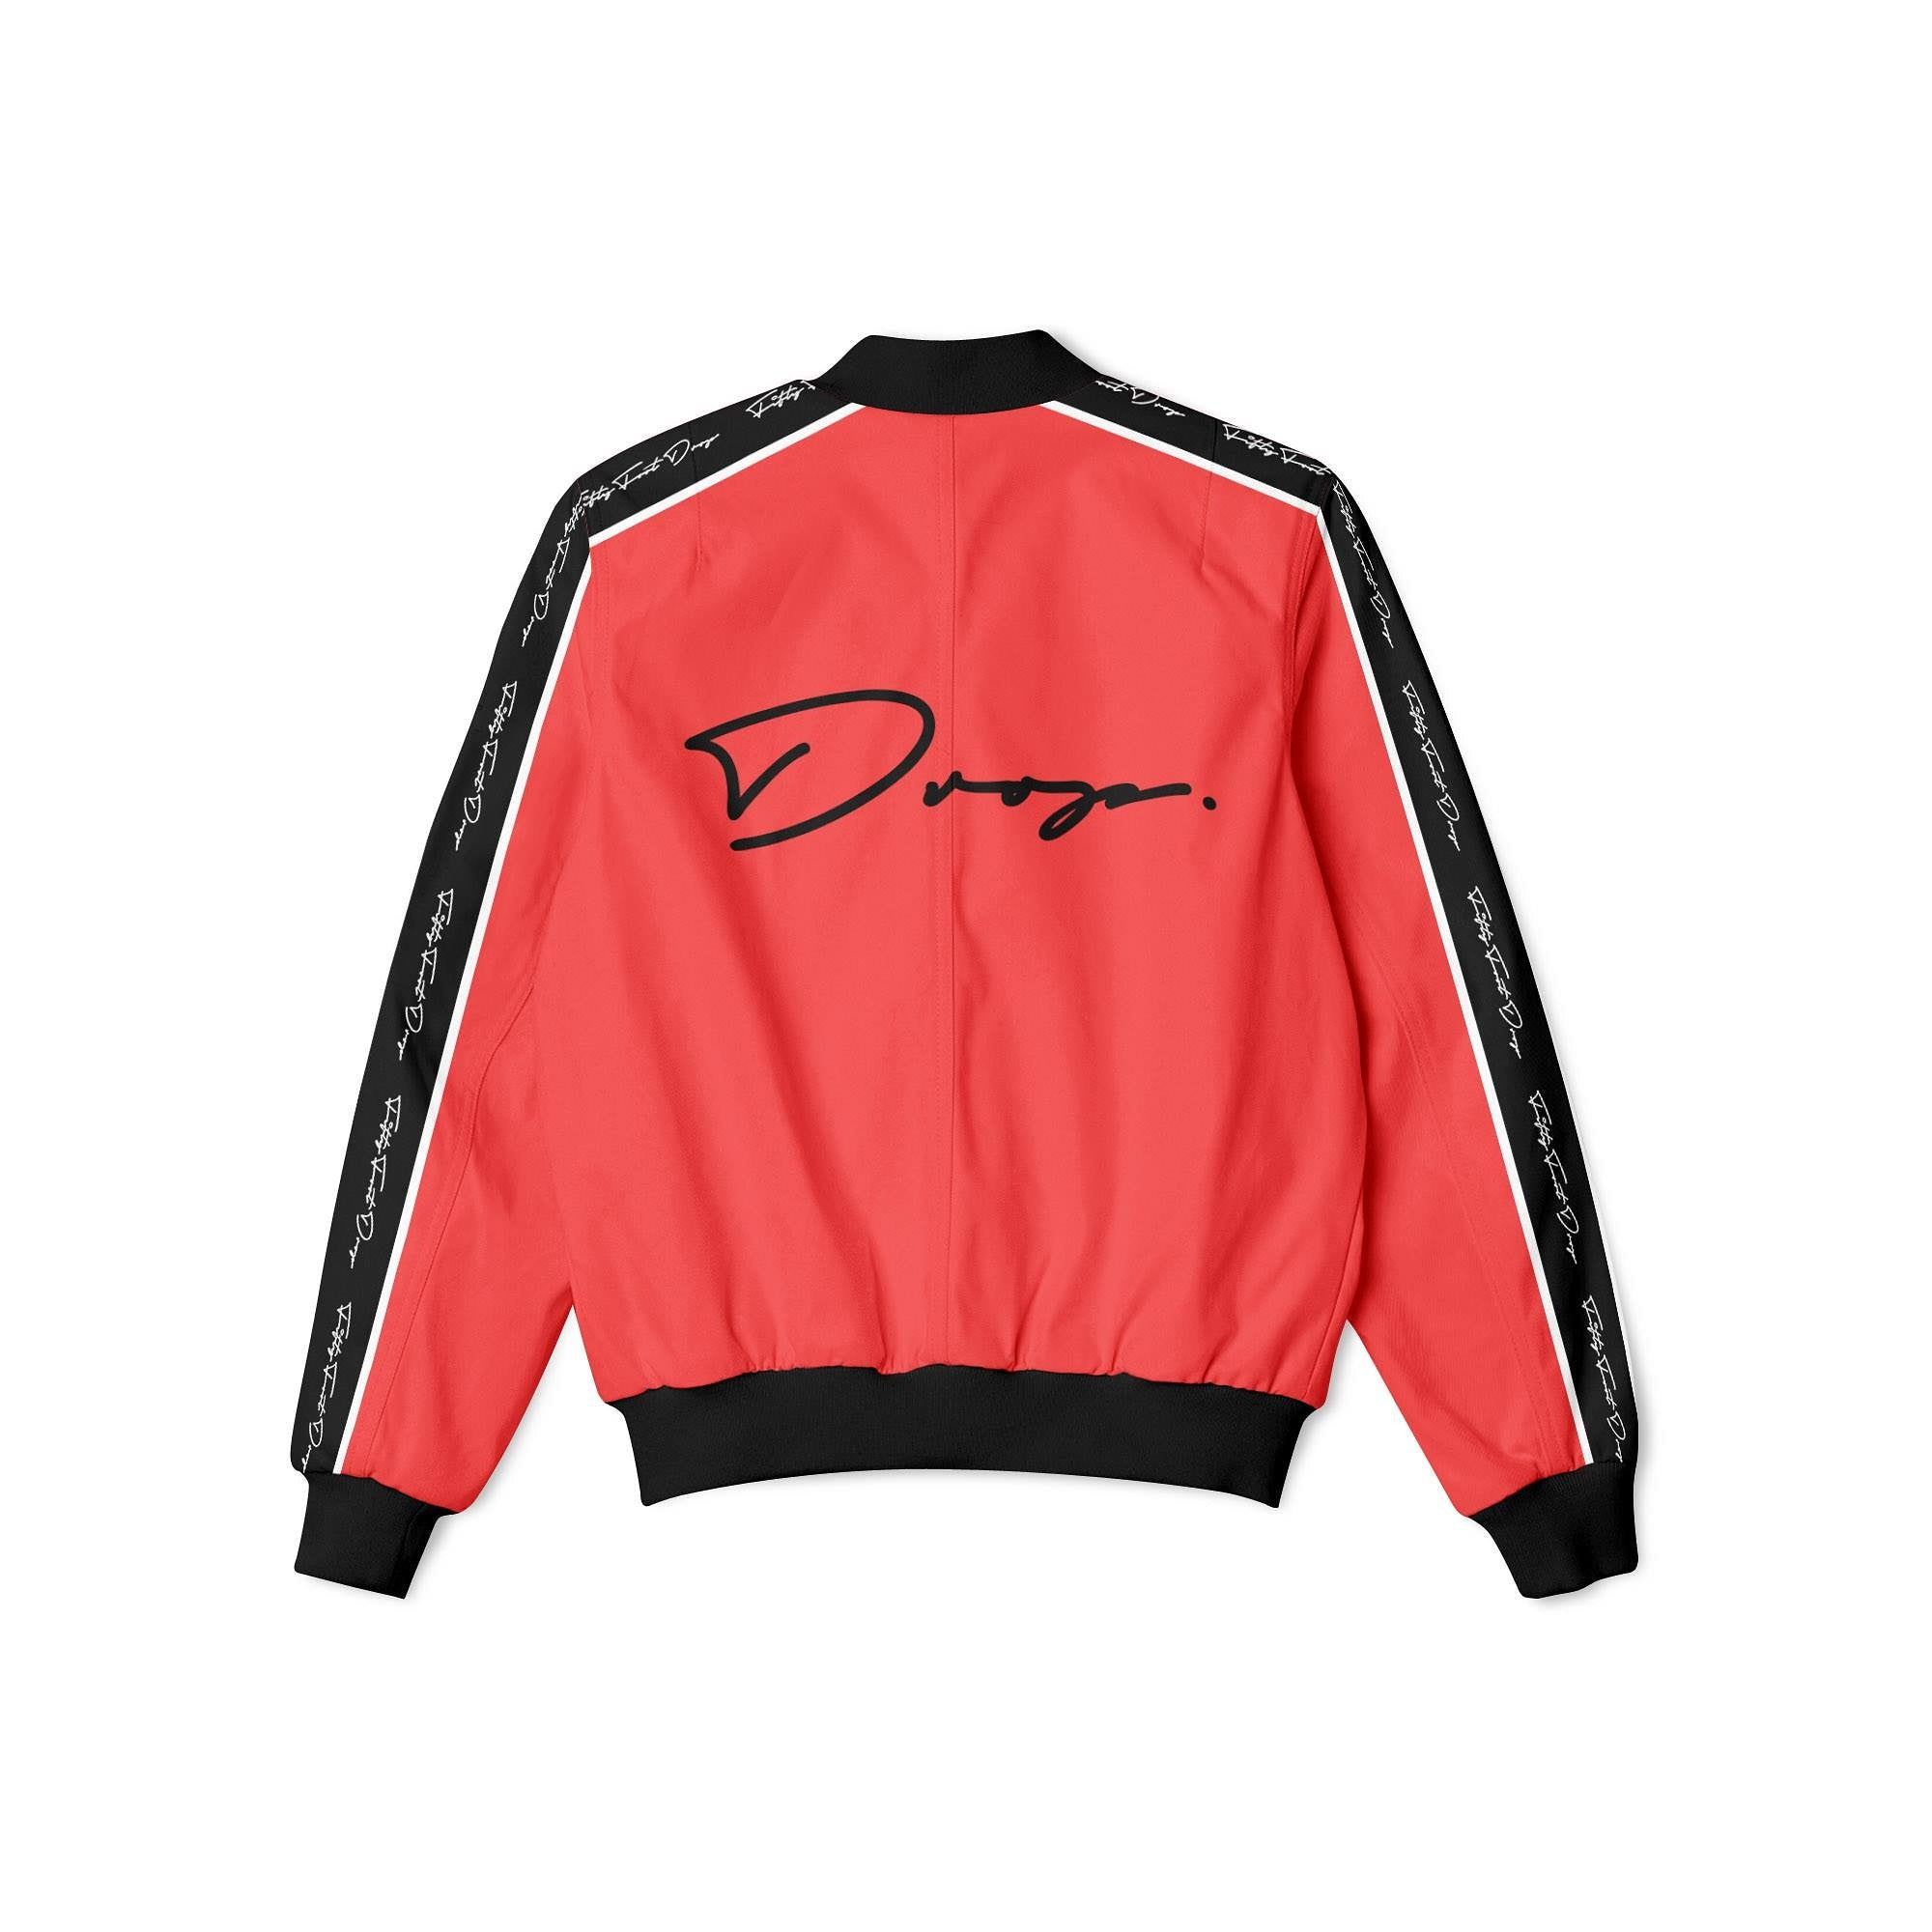 FIFTY FOOT DROP - RED BOMBER JACKET